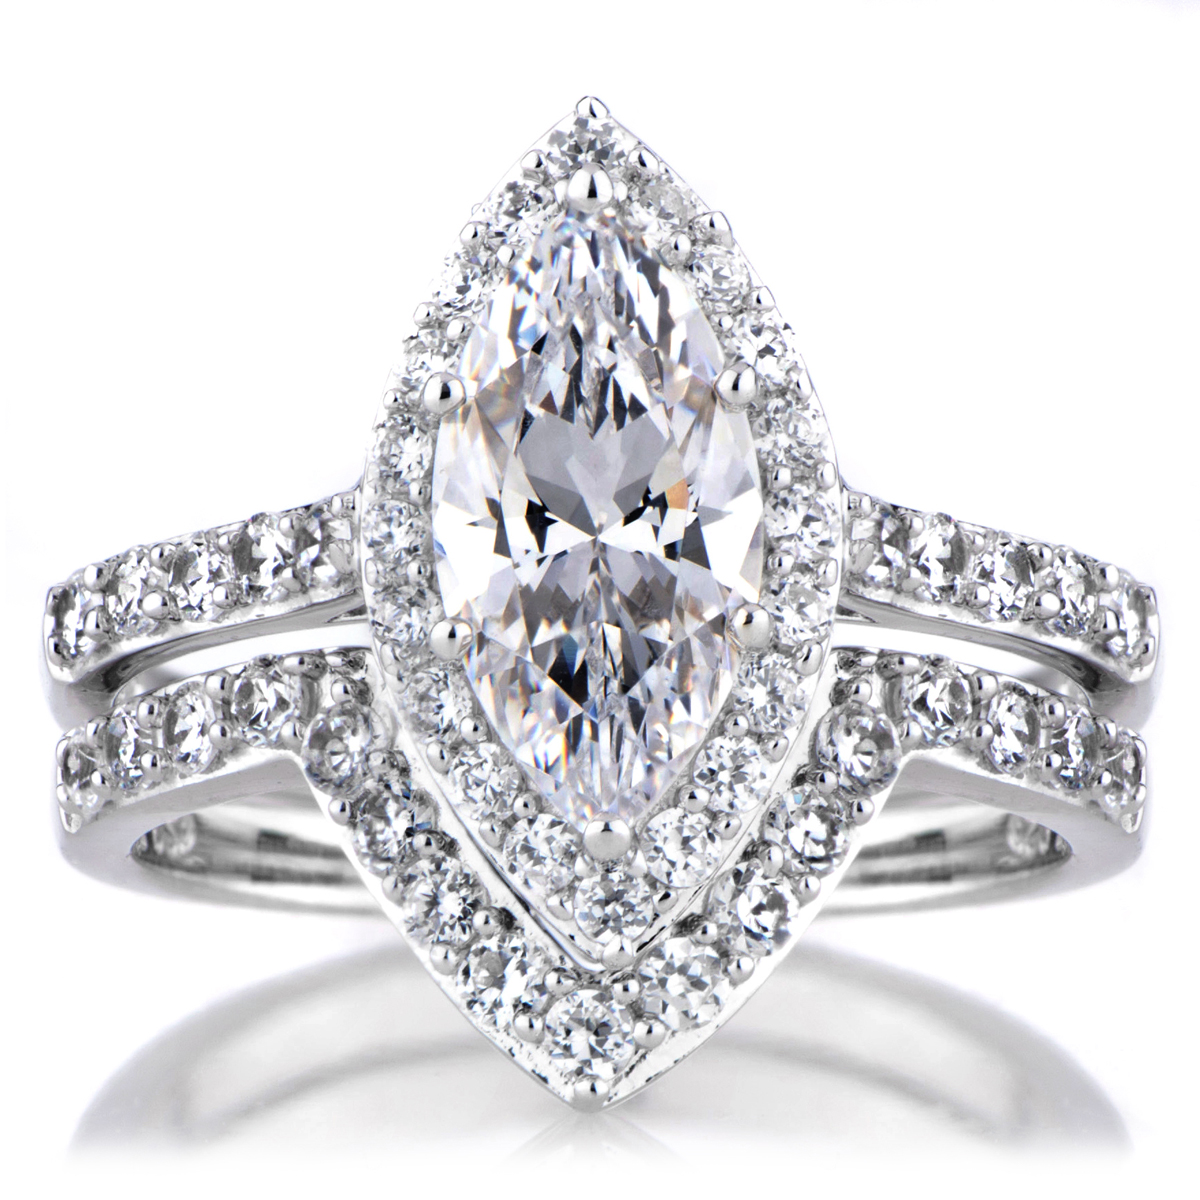 padgetts marquise cut cz engagement ring and guard set - Cz Wedding Rings